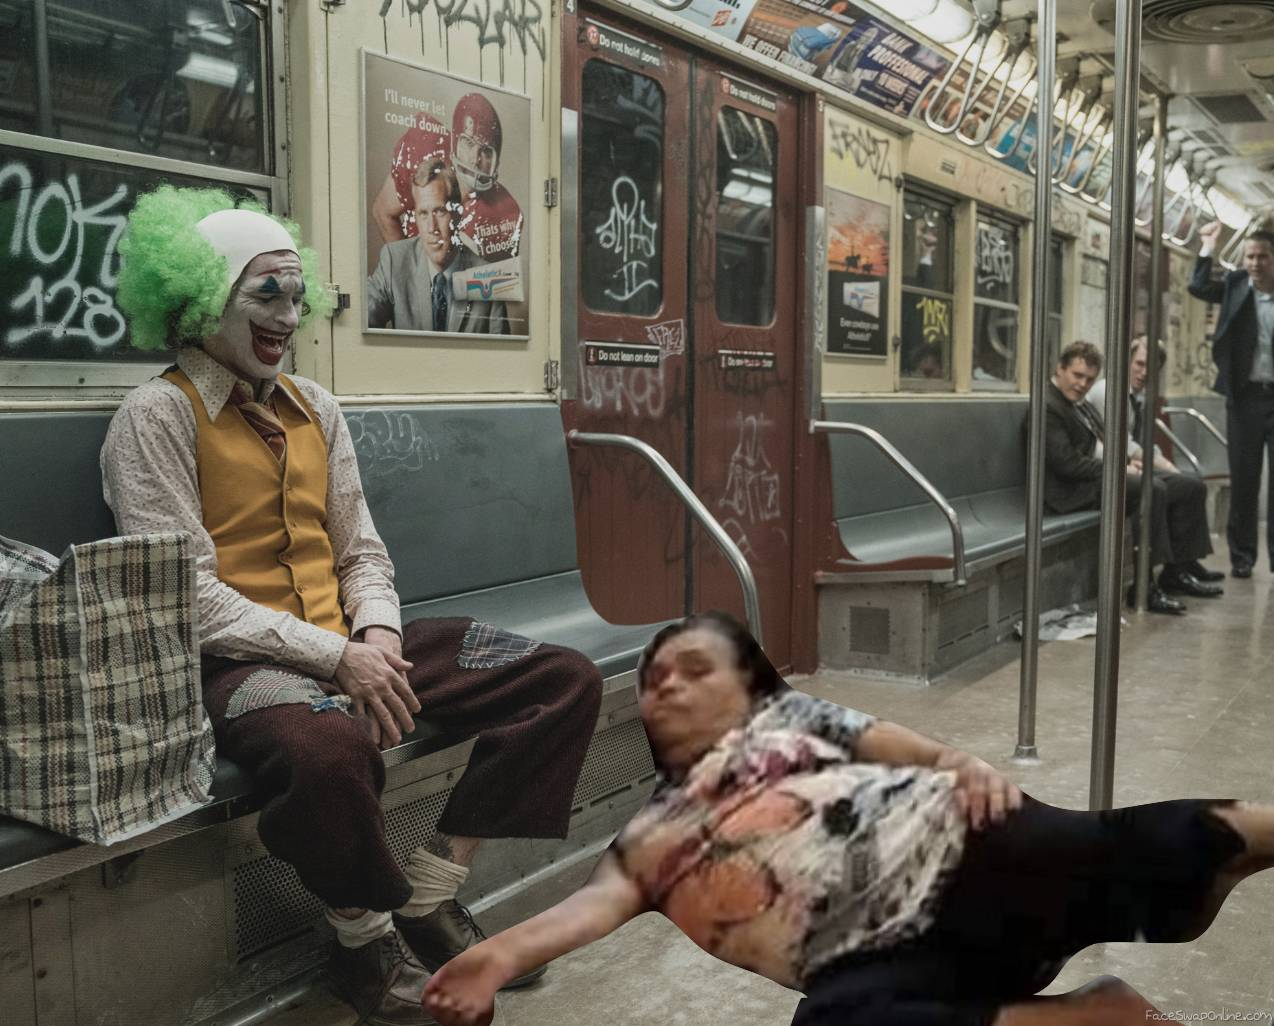 Joker laughs at woman sleeping in public transport